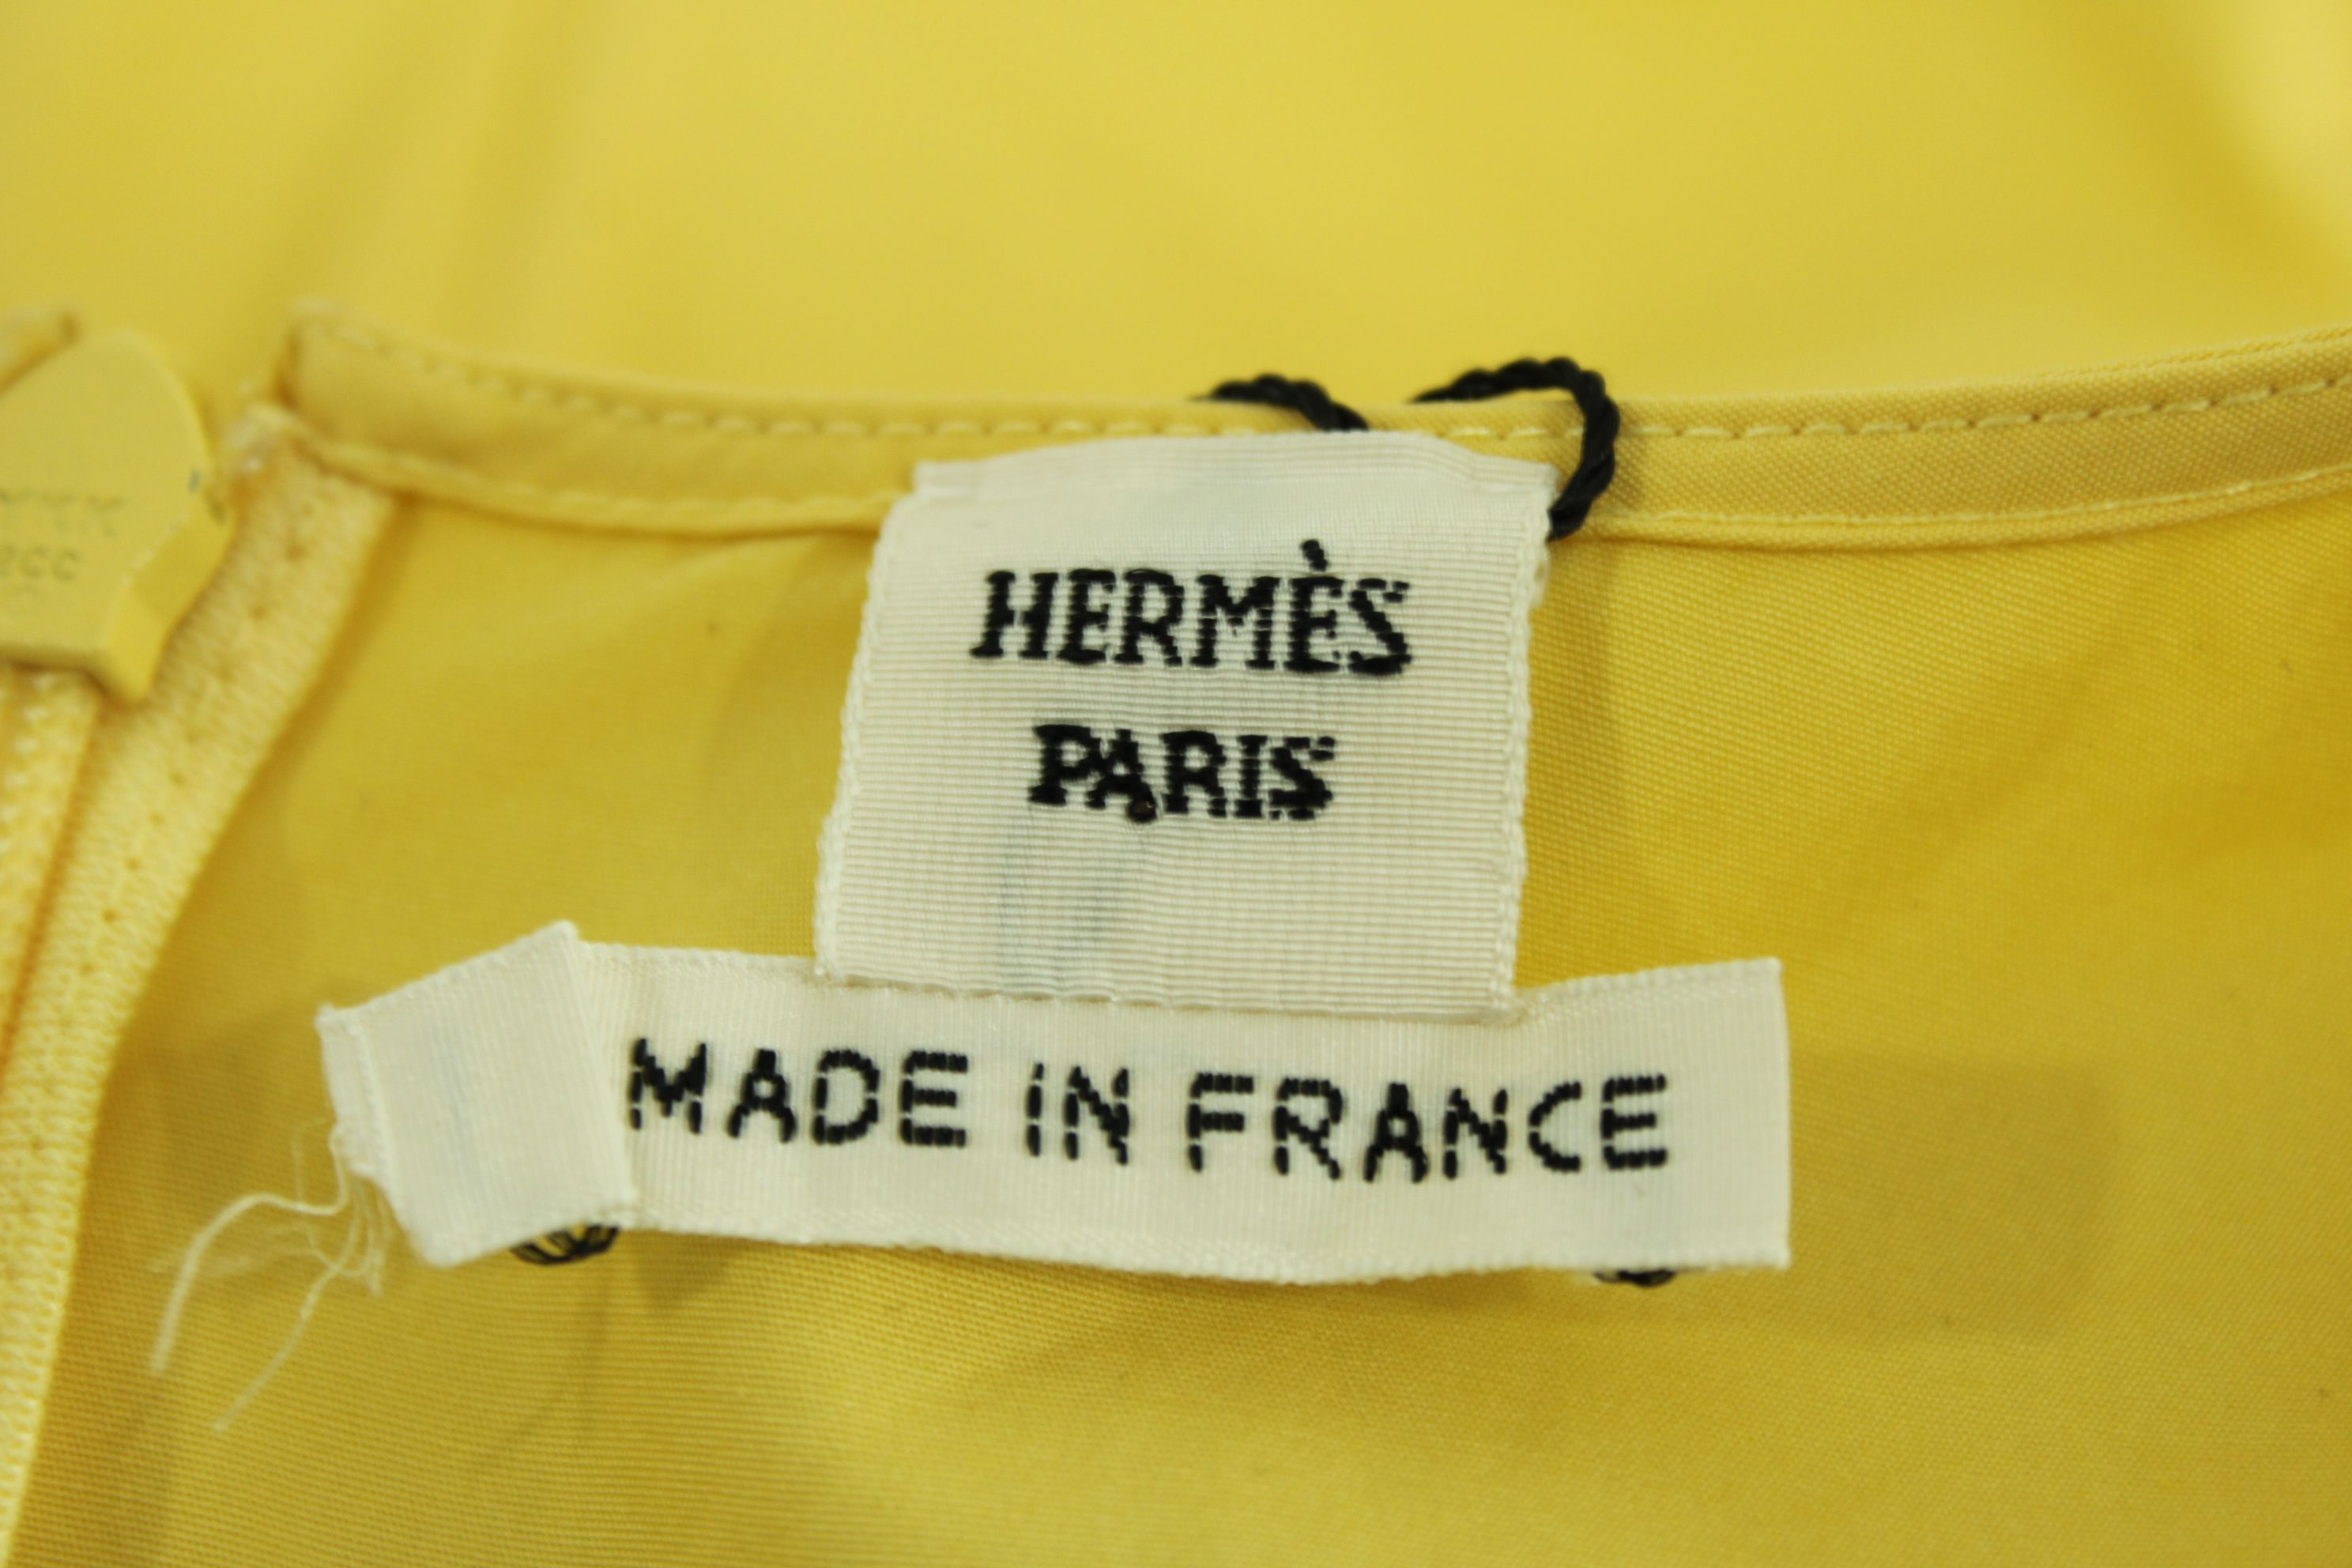 Hermès Cotton Top -Pre Owned Condition Good